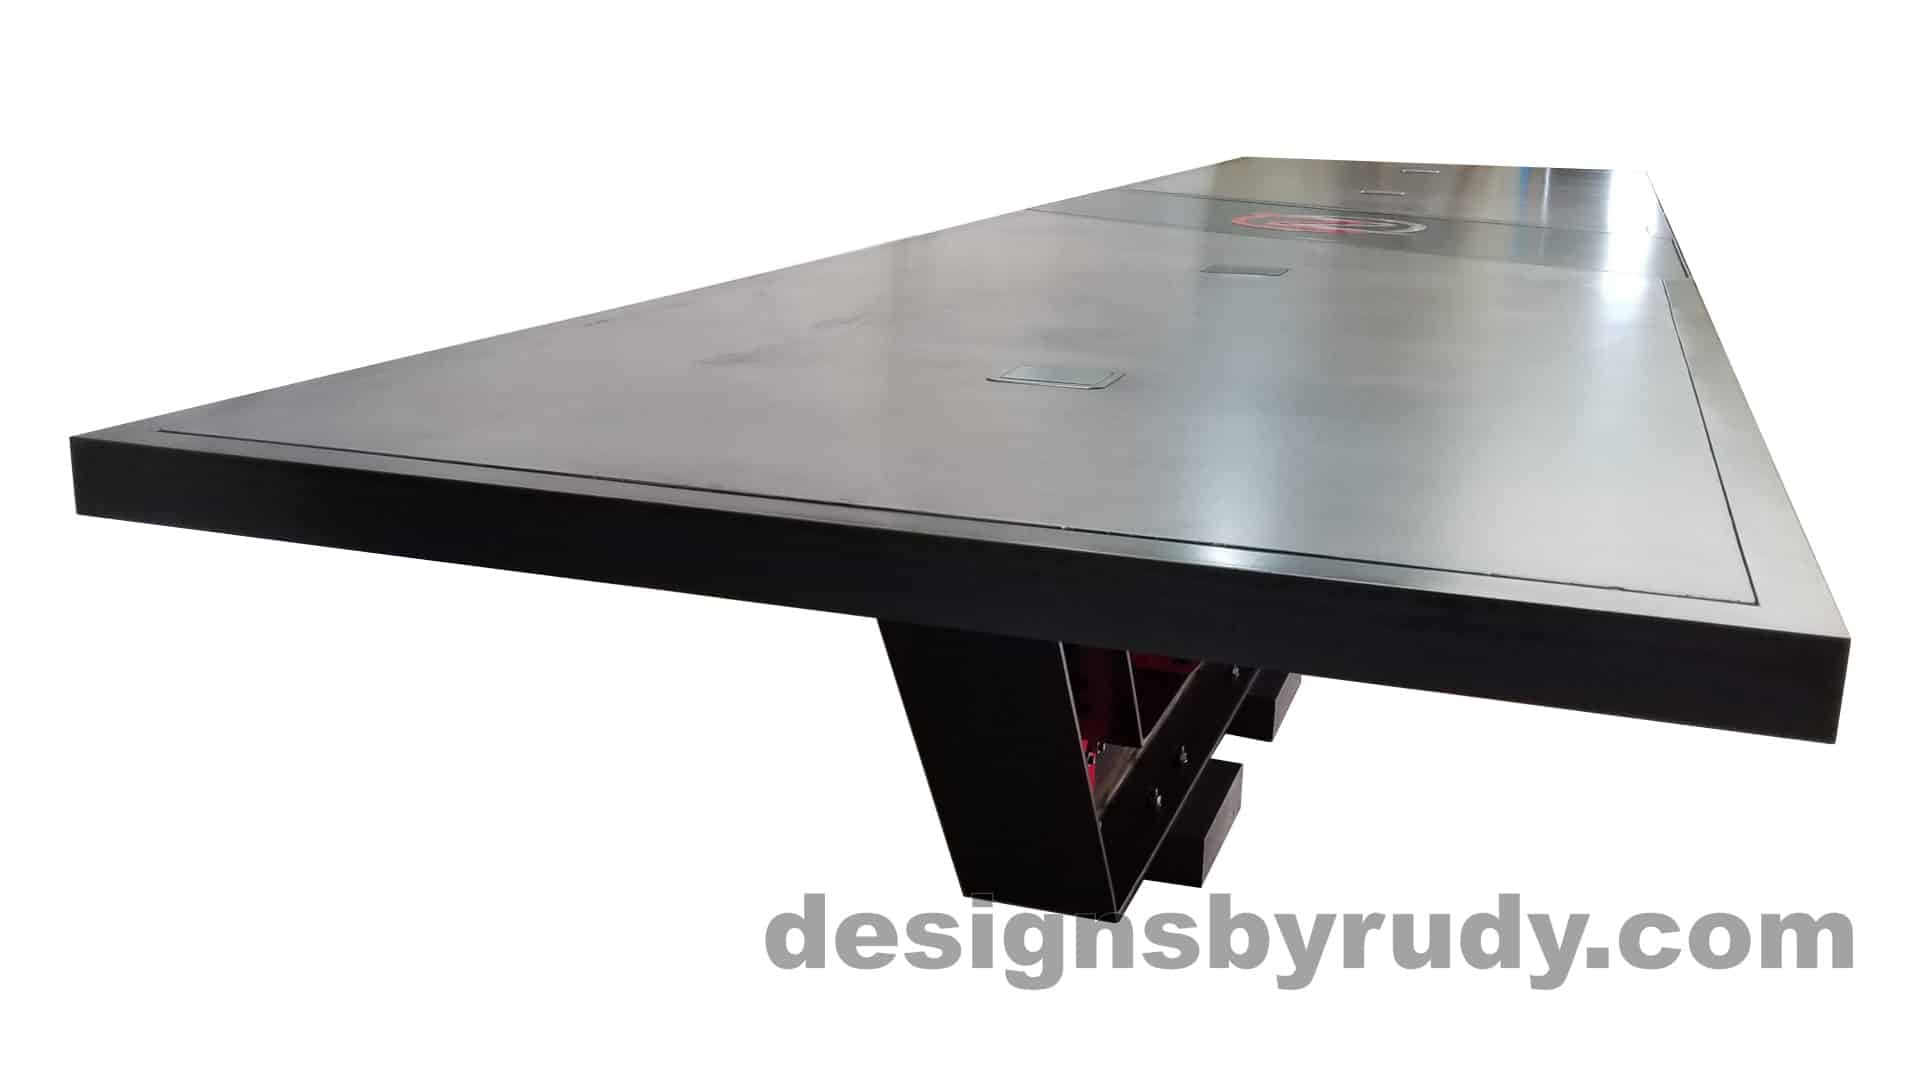 6 Steel and concrete conference table, design and fabrication by Designs by Rudy, long view